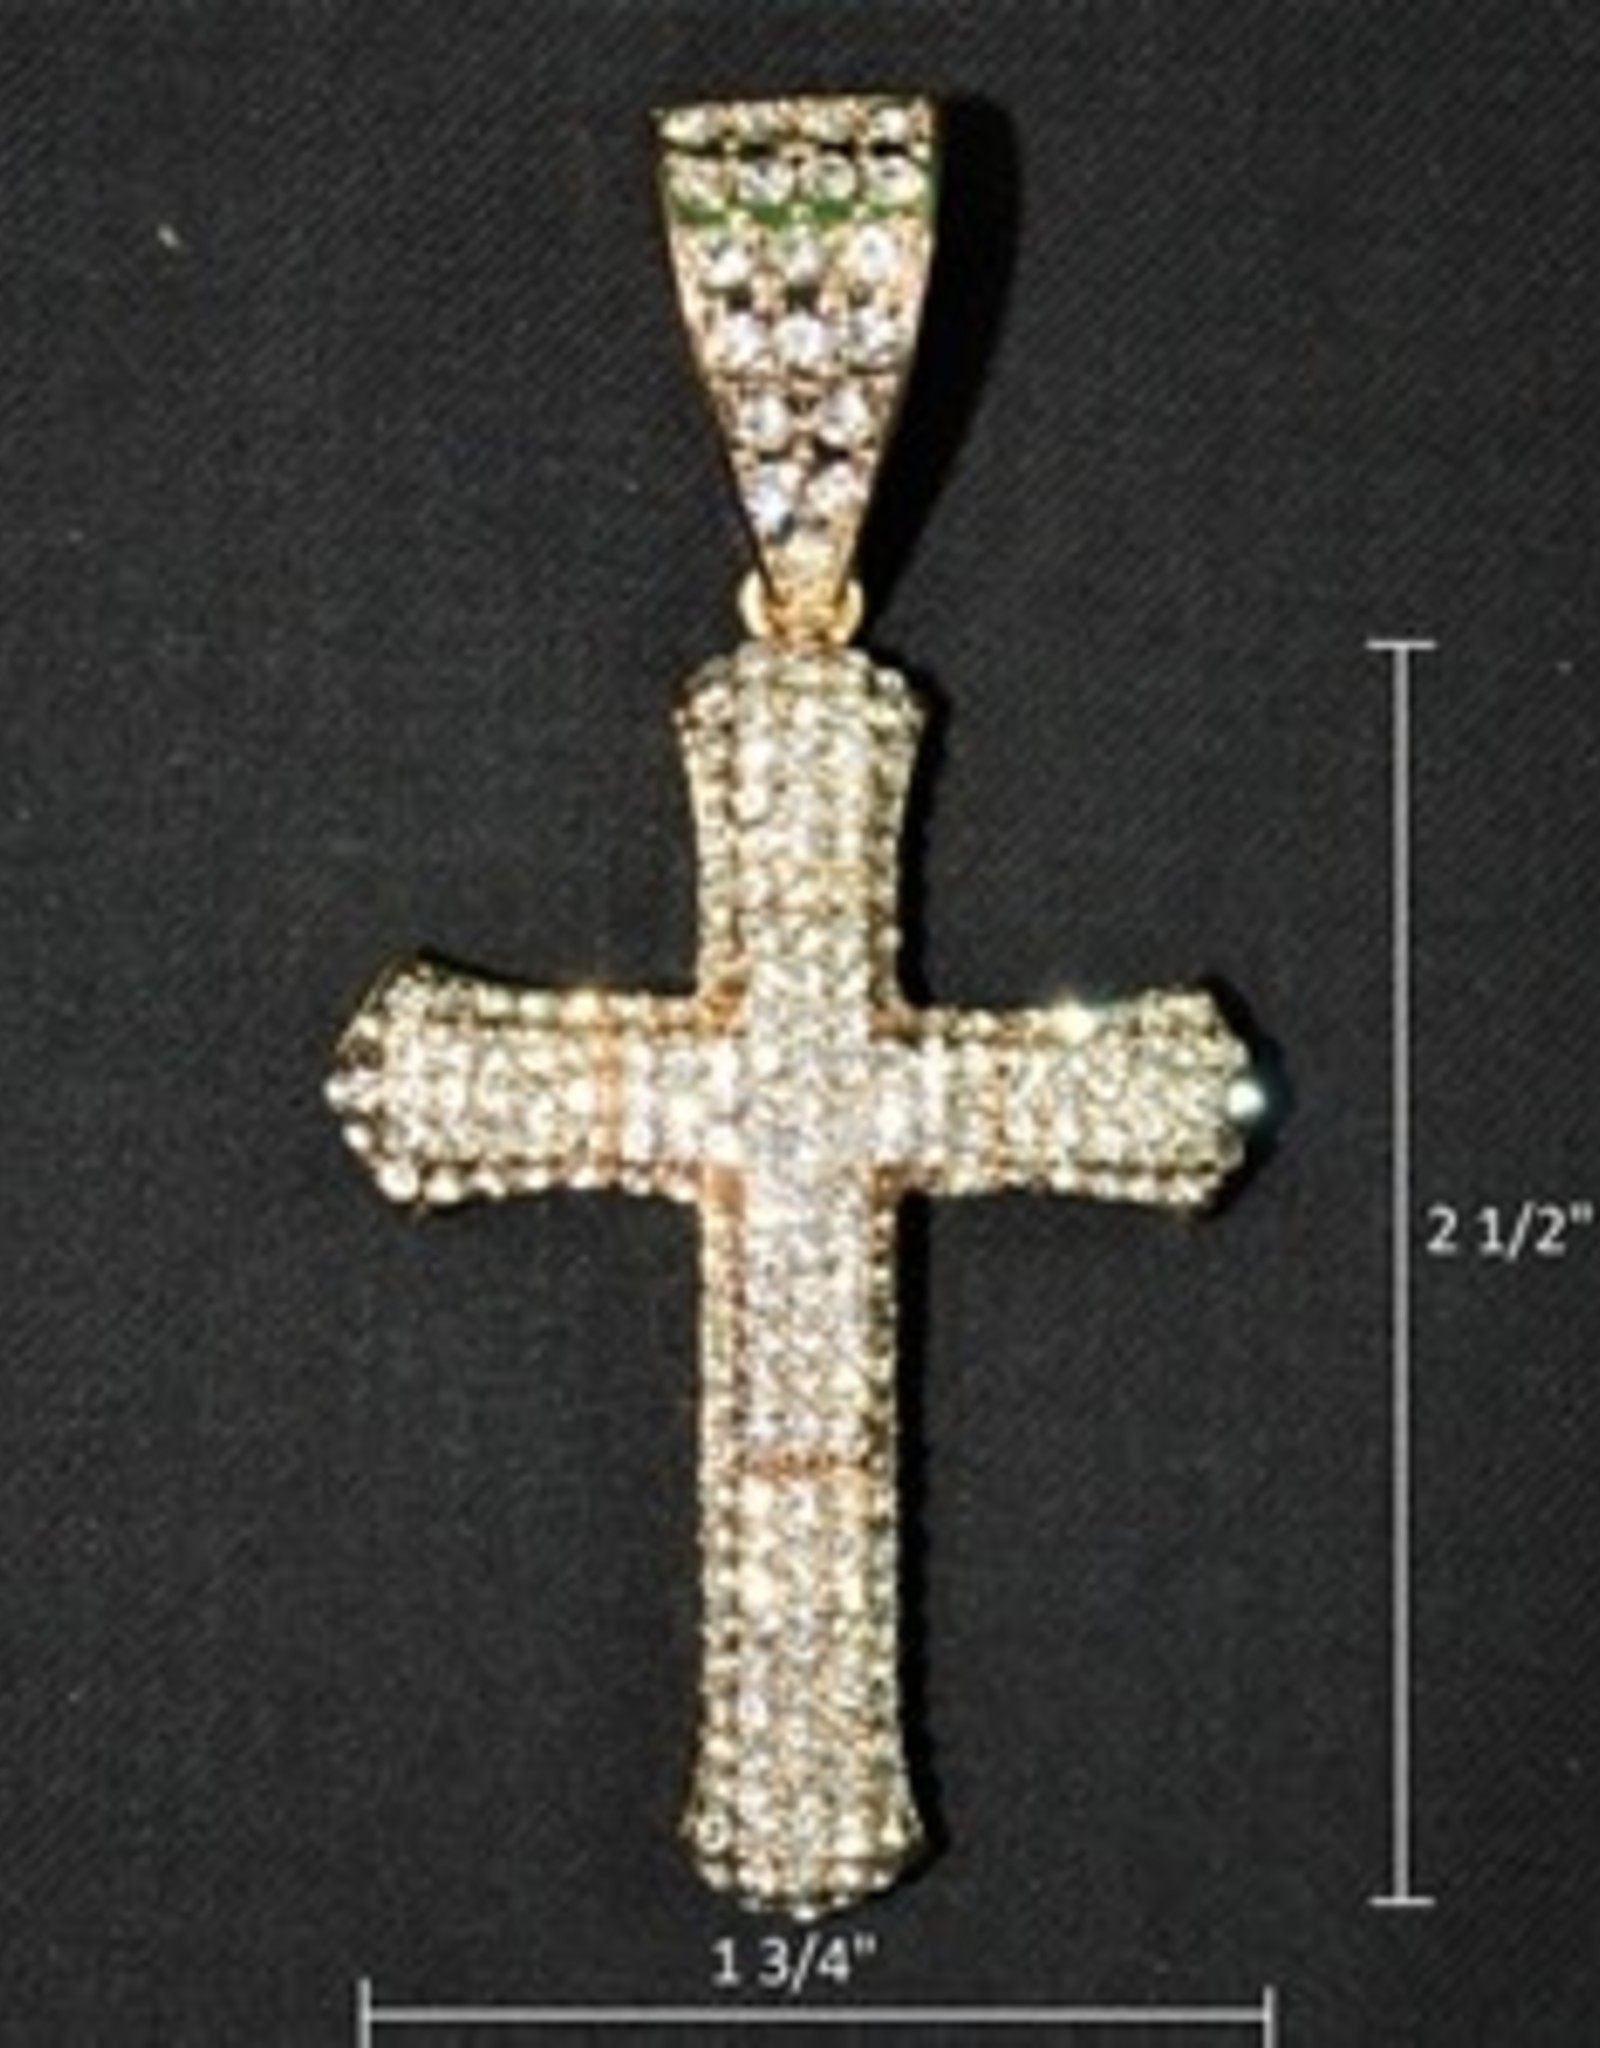 Zuha Trend Cross on Cross Gold with Crystal Dimond Size 2 1/2 By 1 3/4